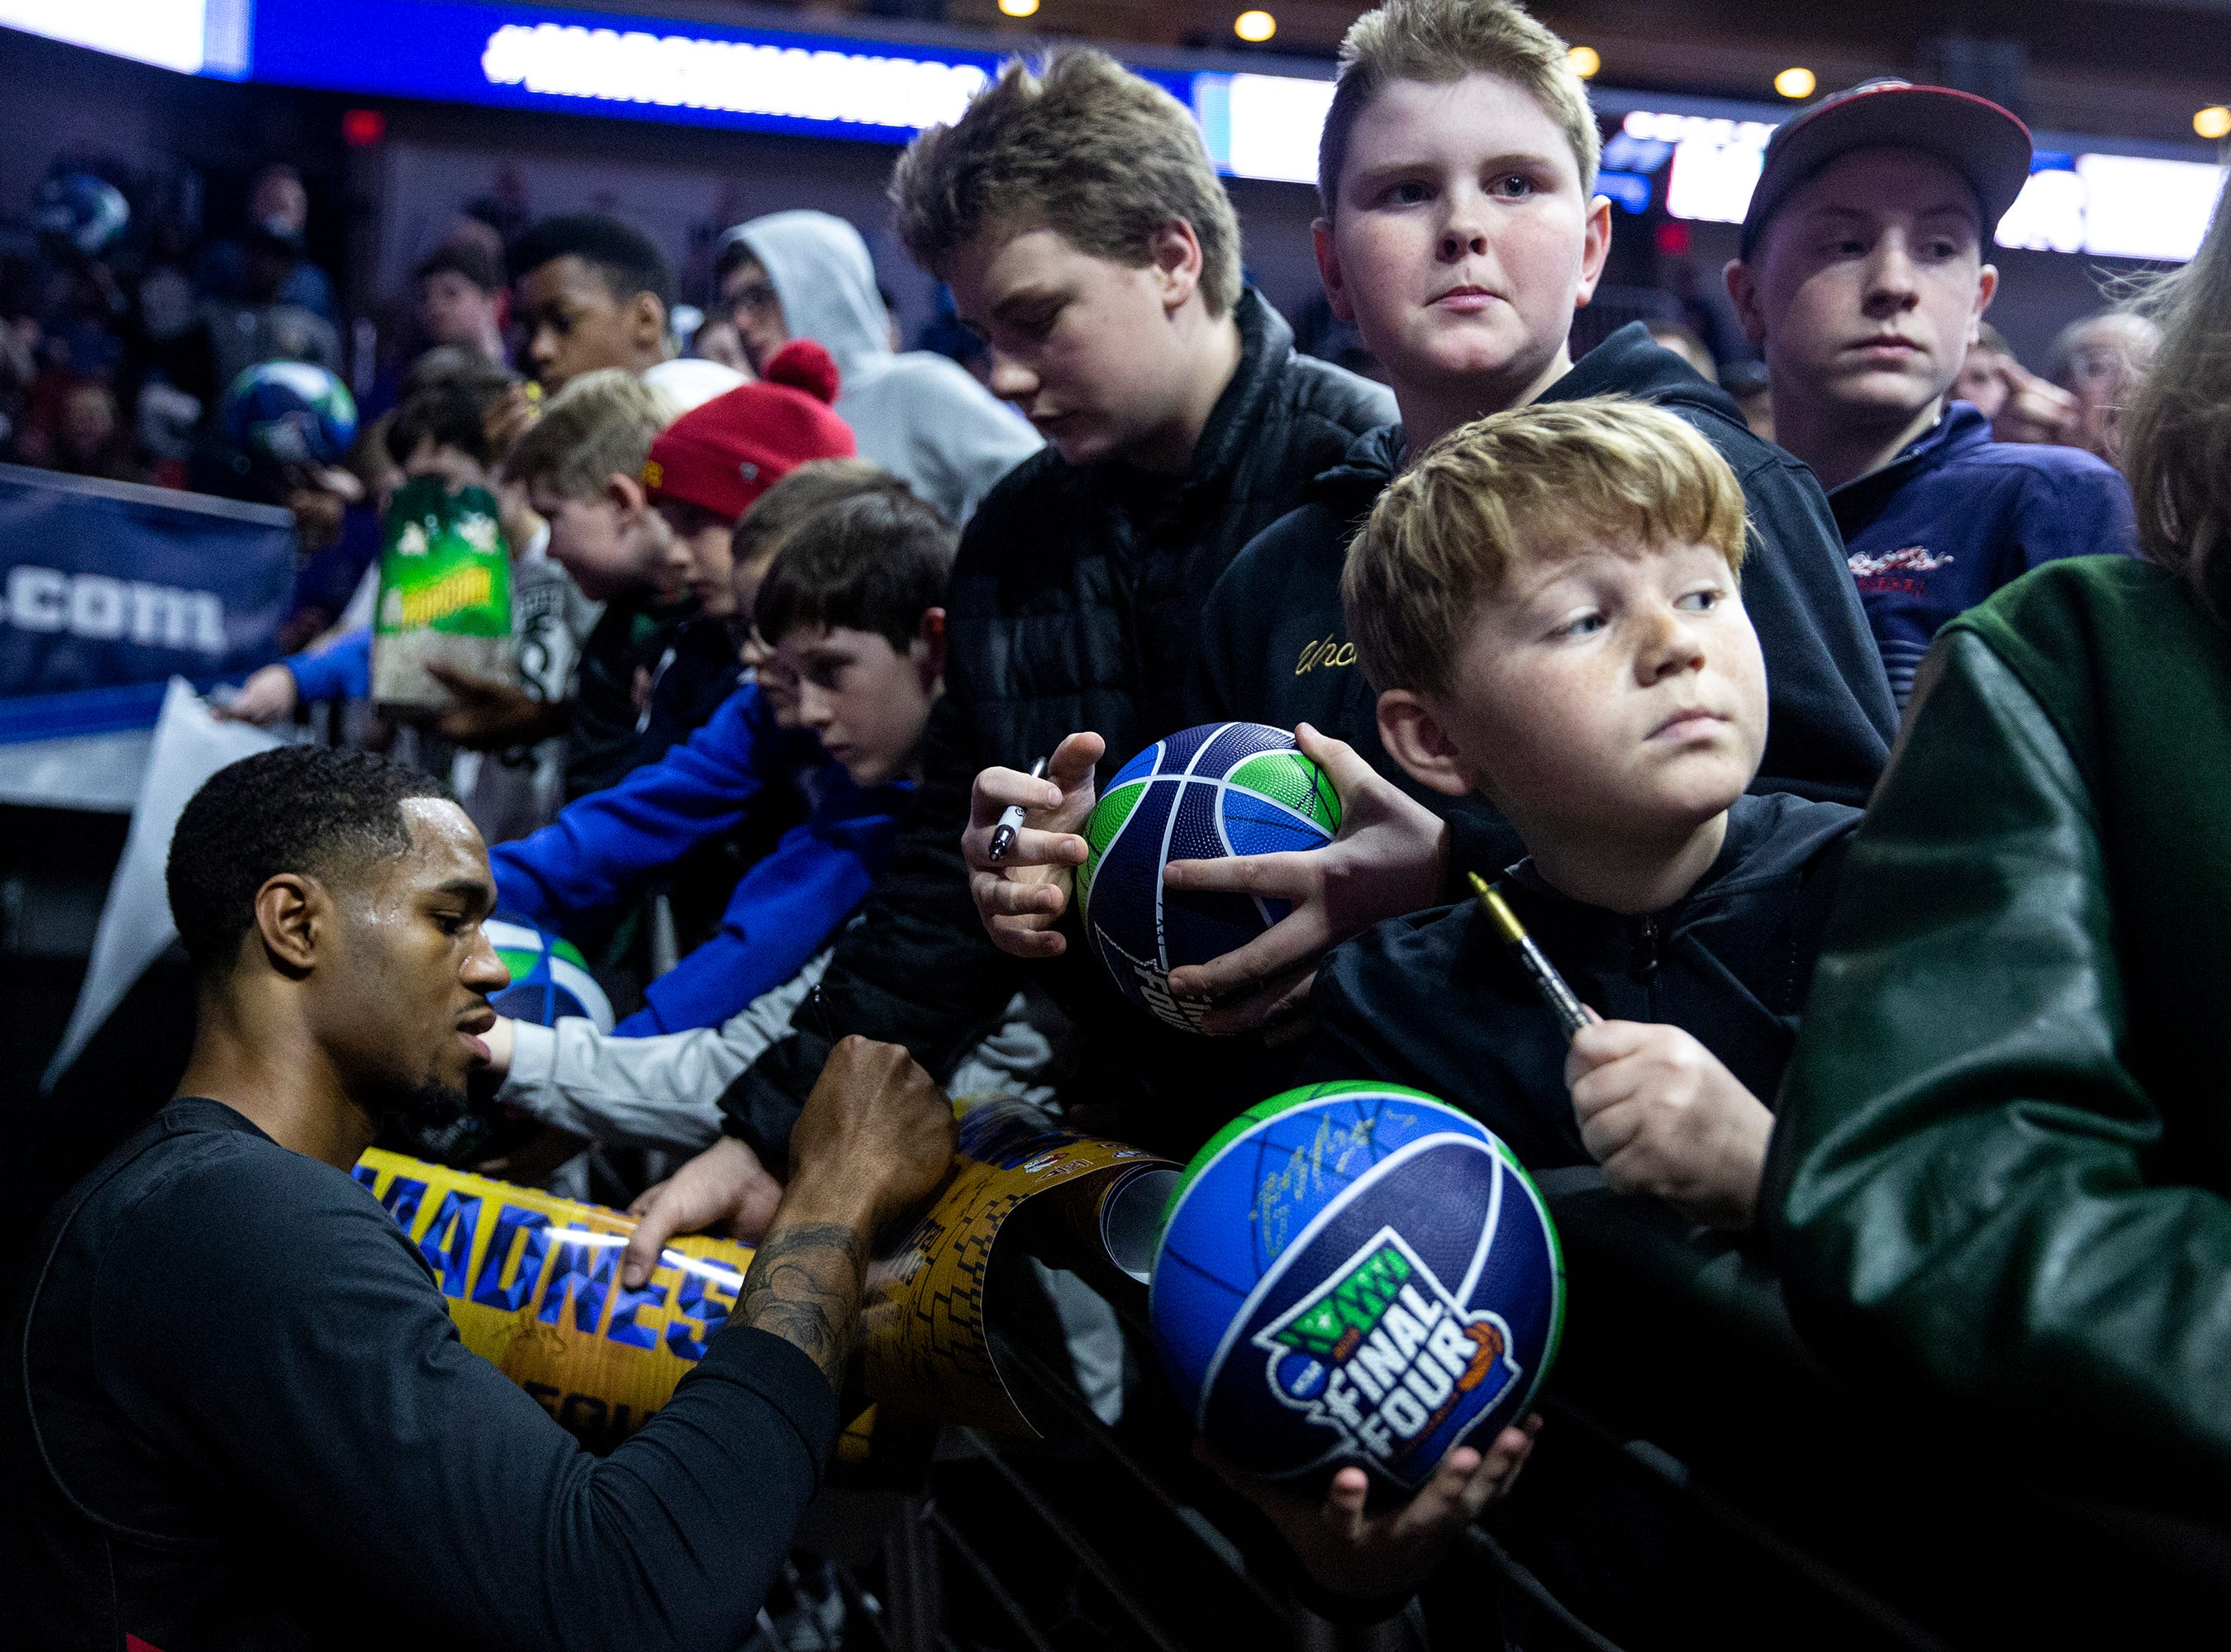 Basketball fans wait to ask players for autographs during Louisville's open practice before the first round of the NCAA Men's Basketball Tournament on Wednesday, March 20, 2019, at Wells Fargo Arena in Des Moines, Iowa.